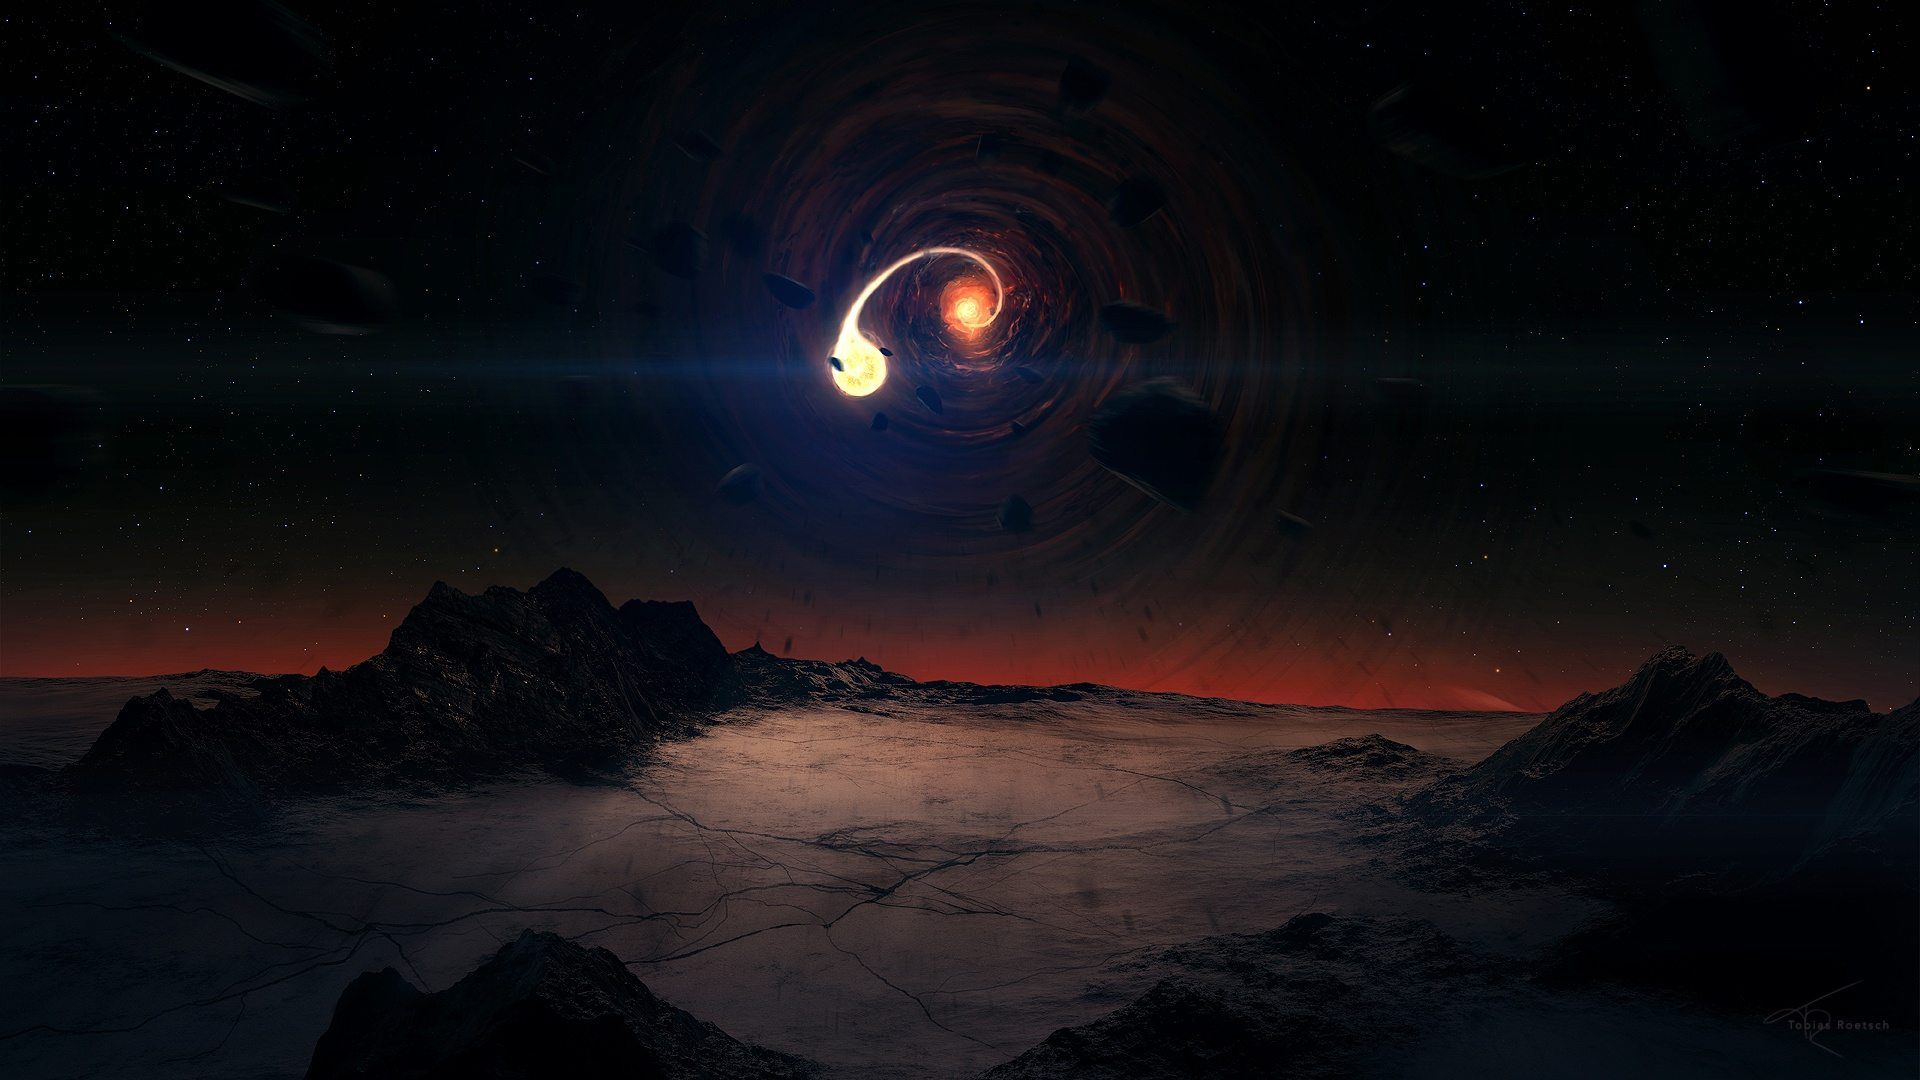 black hole hd wallpaper from gallsource | hd wallpaper